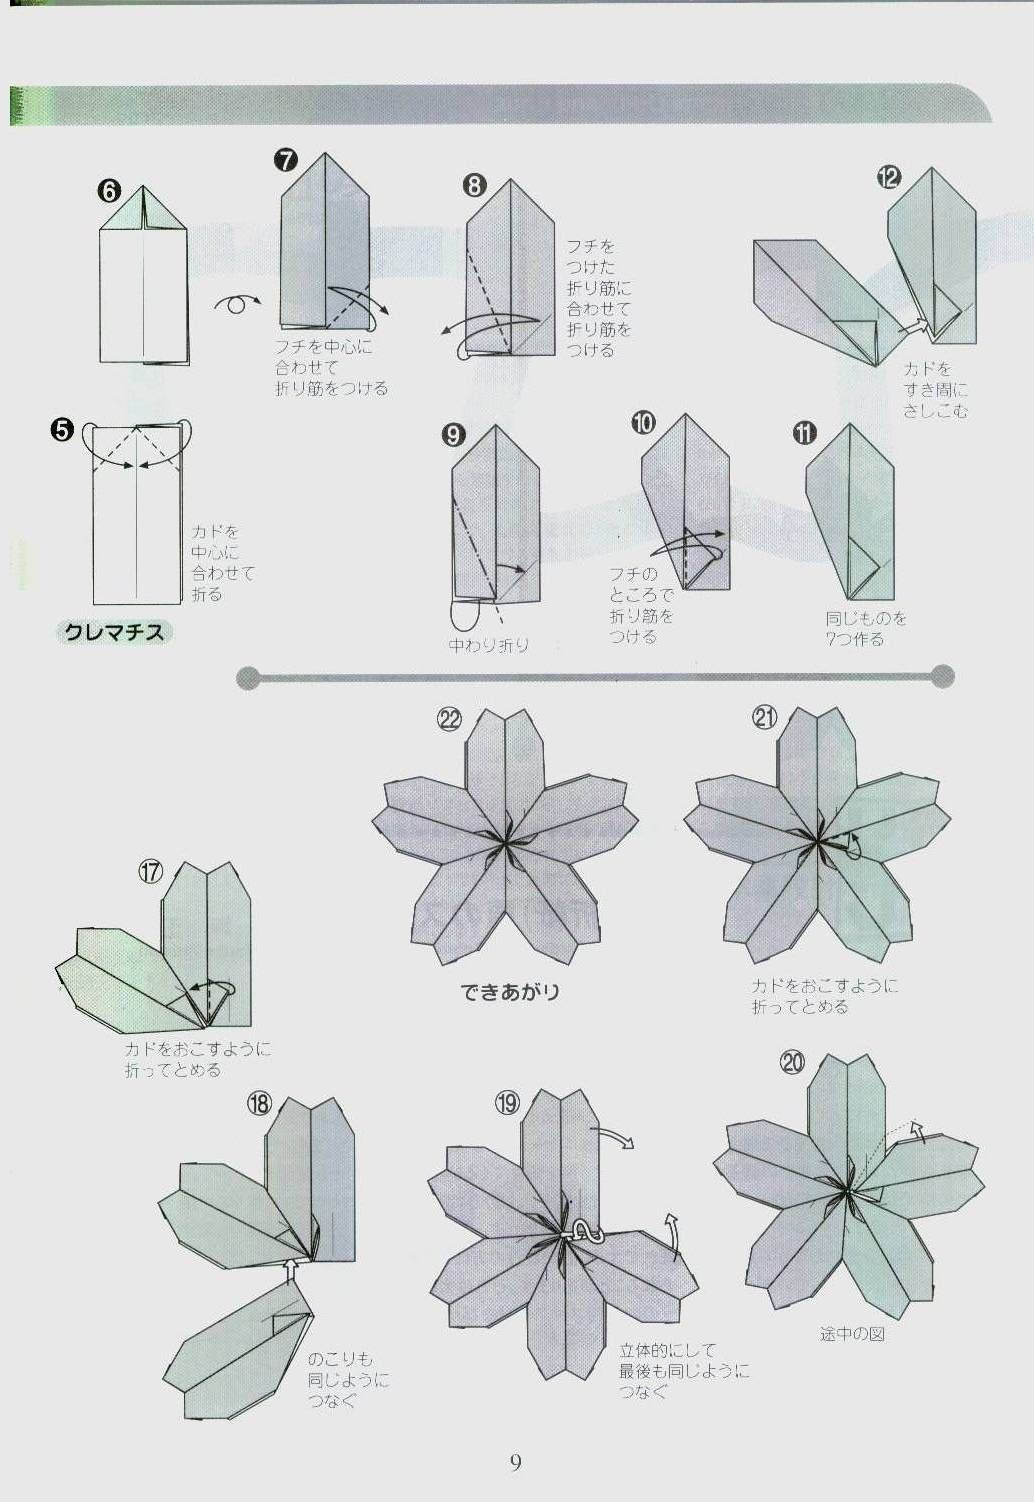 How to diy cherry blossom branches origami diagram and cherry rare origami cherry blossom diagram download paper kawaii jeuxipadfo Images